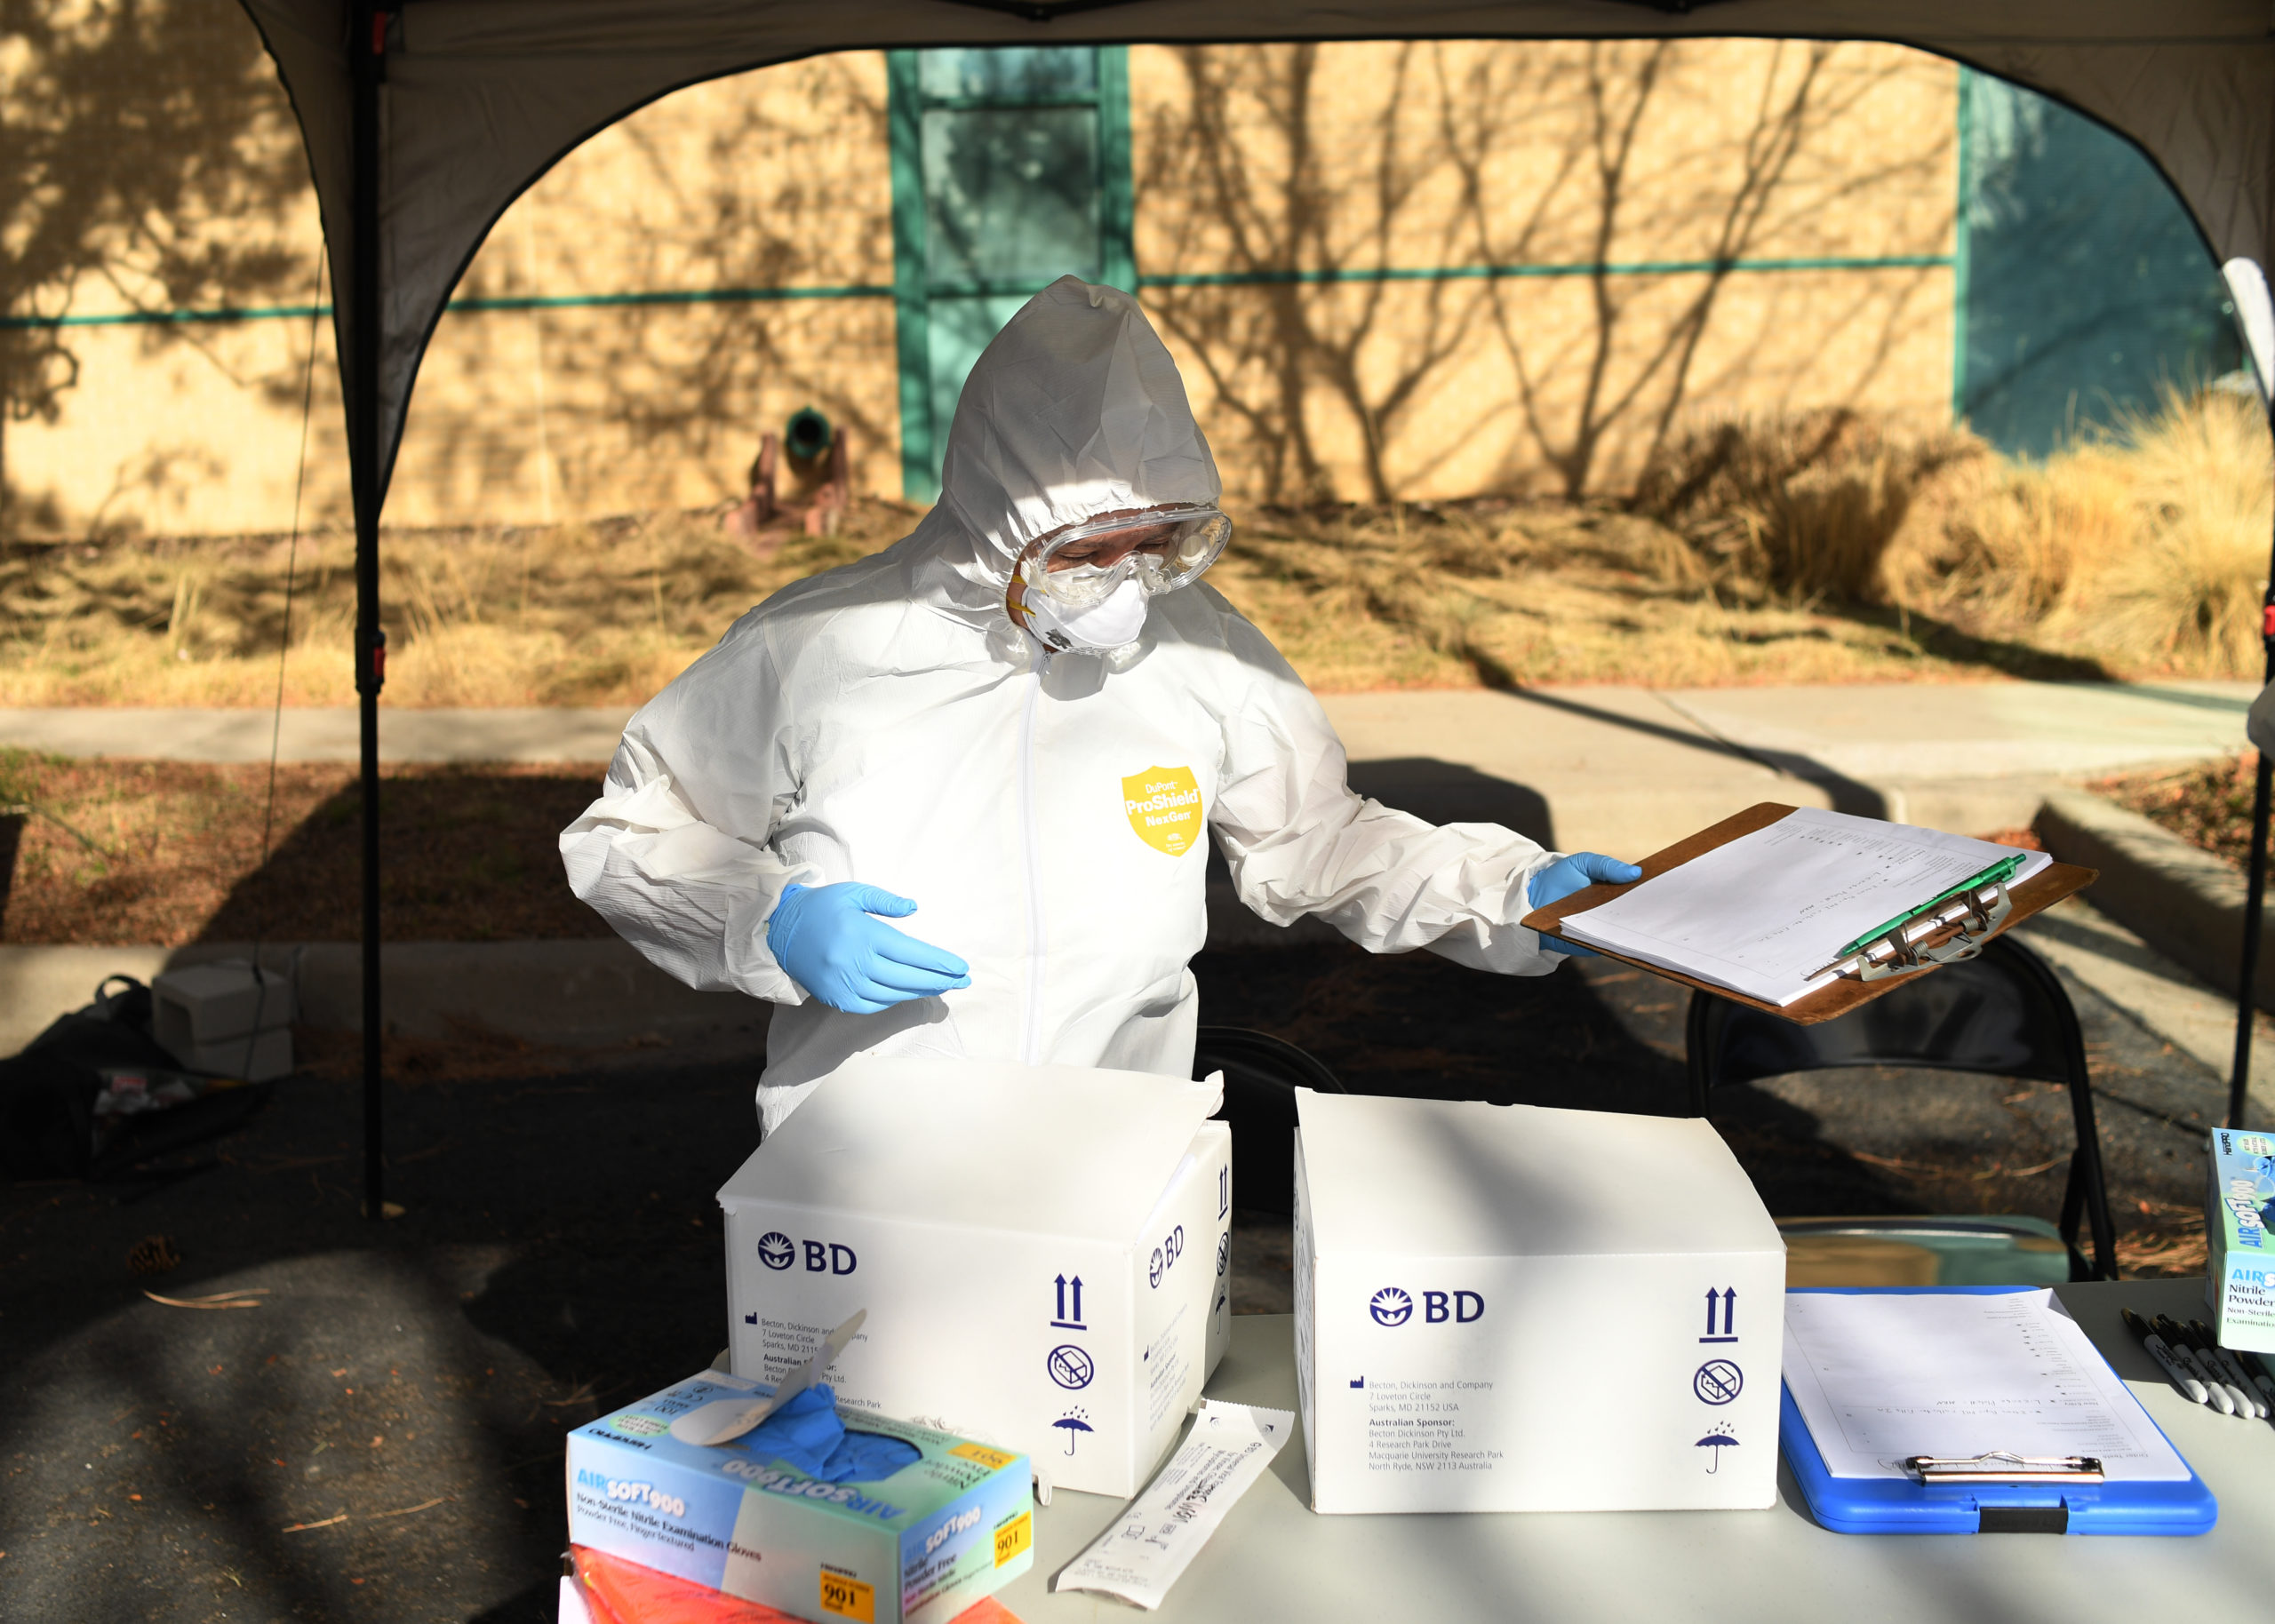 A woman sets up for the Colorado Department of Public Health and Environment first community testing center for COVID-19 at the state lab on March 11, 2020 in Denver. The drive-up testing center at 8100 E. Lowry Blvd, was open from 10 a.m. - 2 p.m for patients with doctor's order.